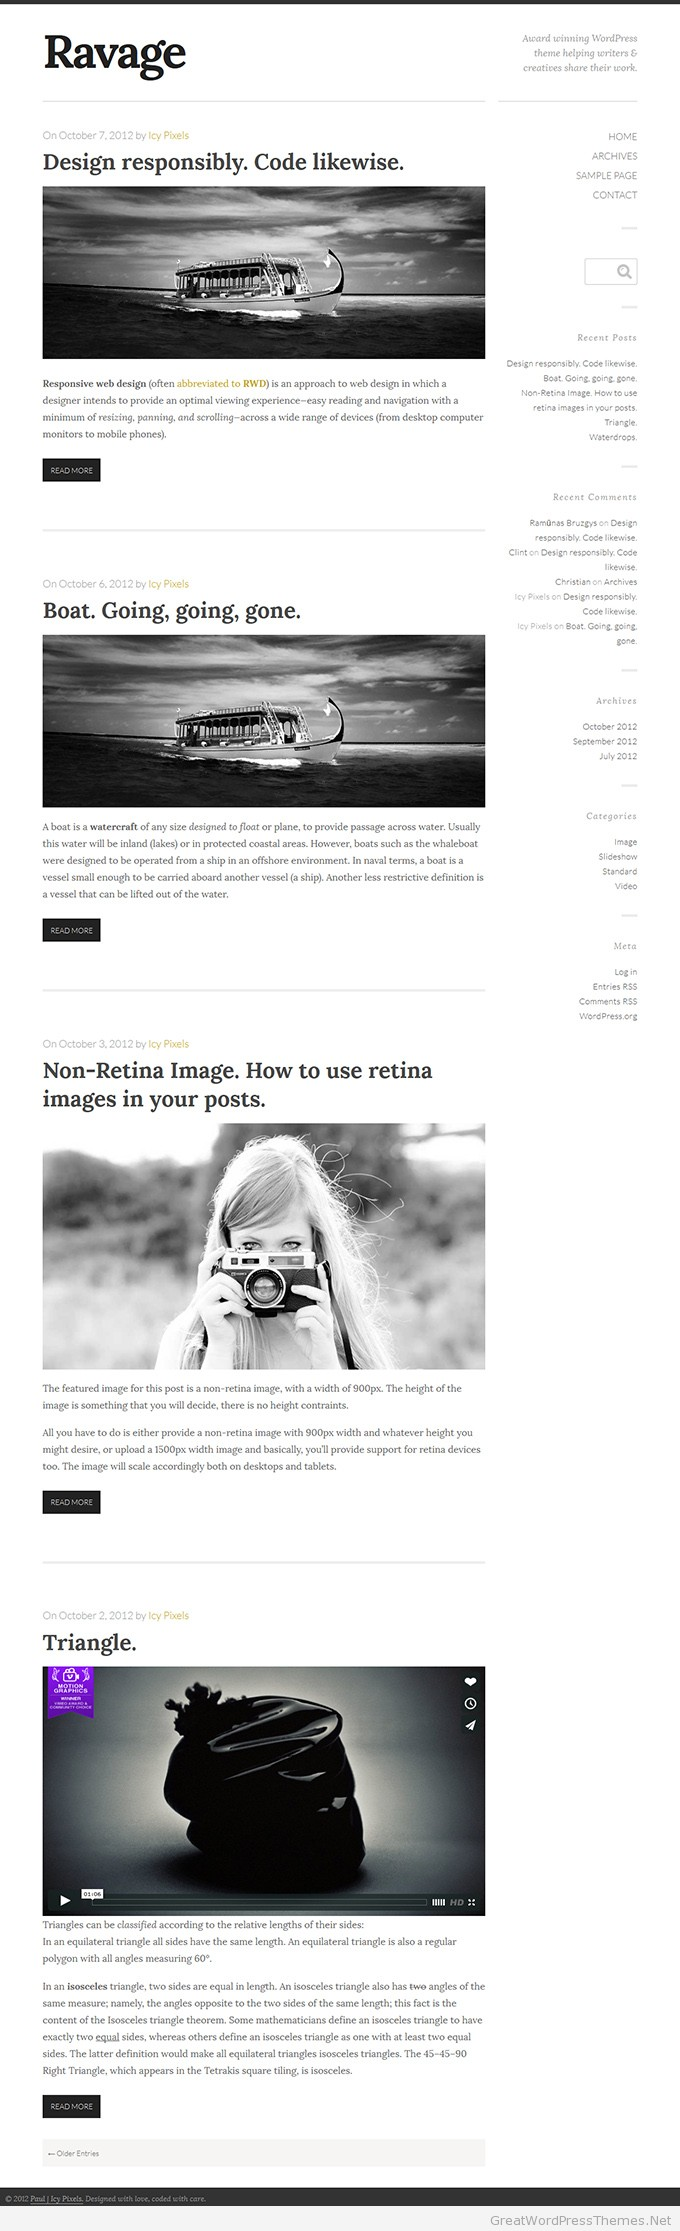 Ravage-WordPress-theme